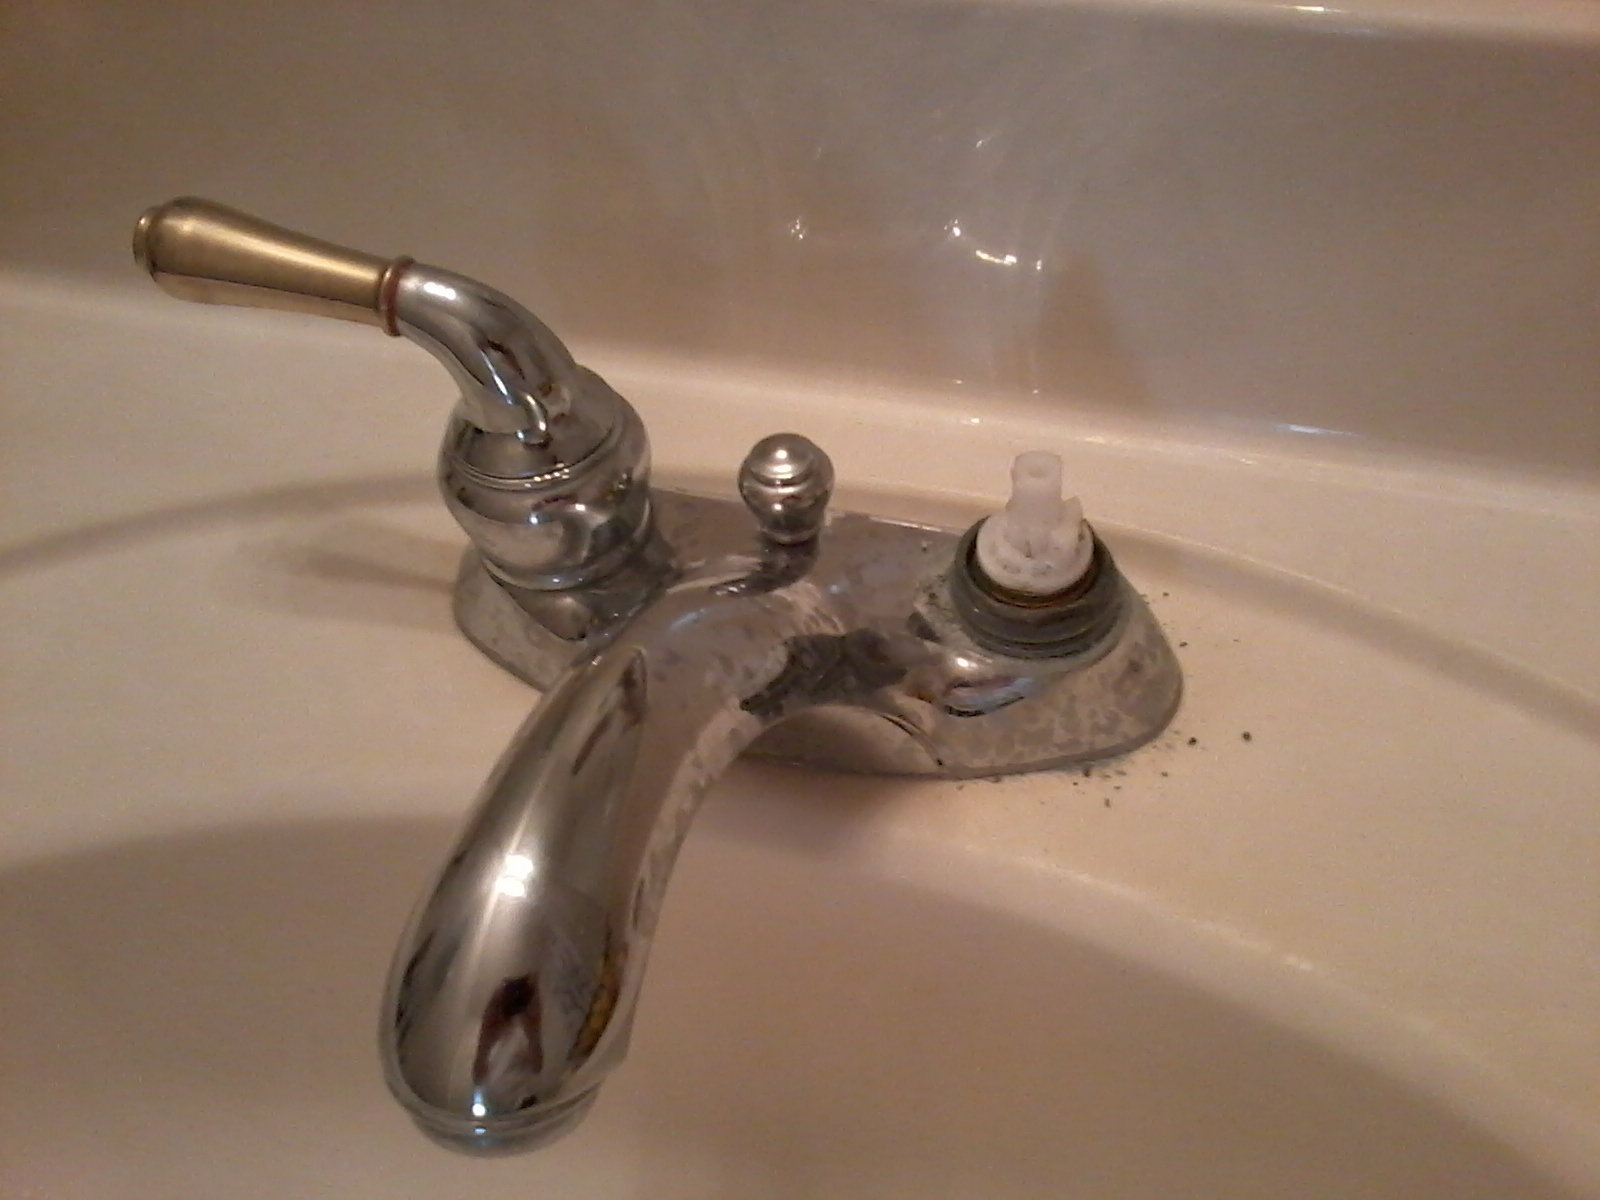 Bath faucet leaking Some pics and question Need help